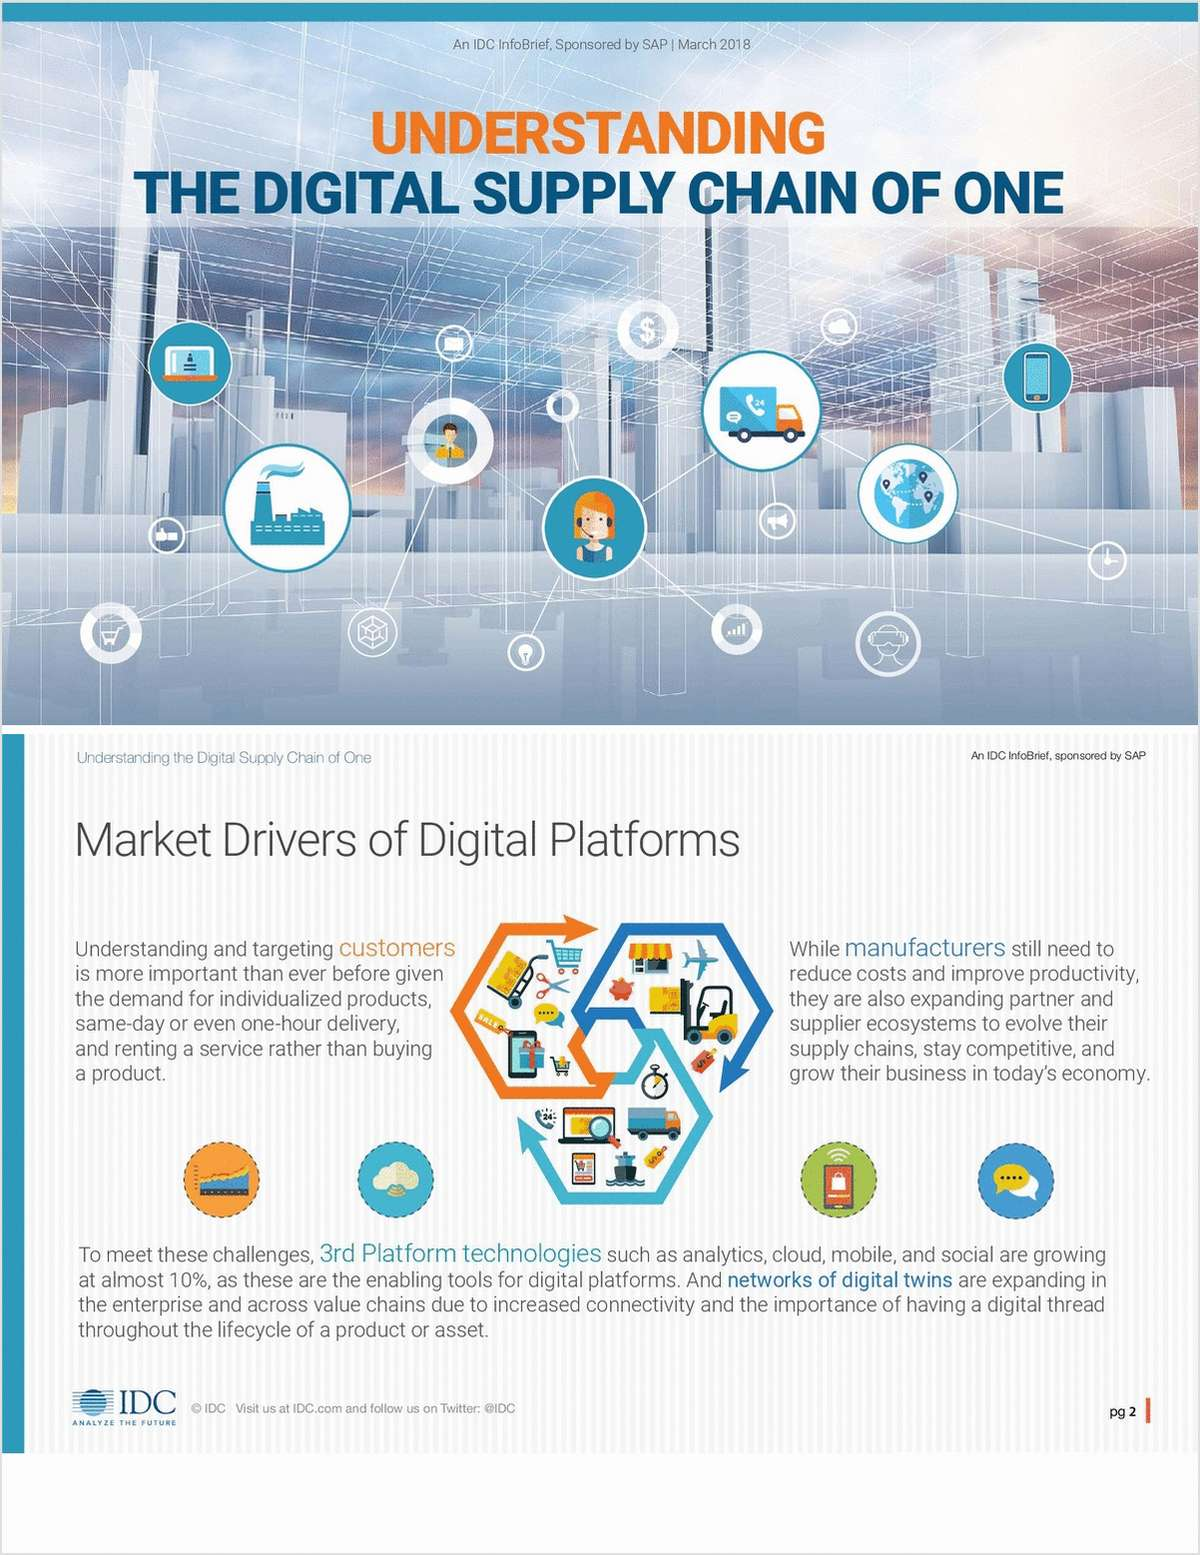 Understanding The Digital Supply Chain of ONE